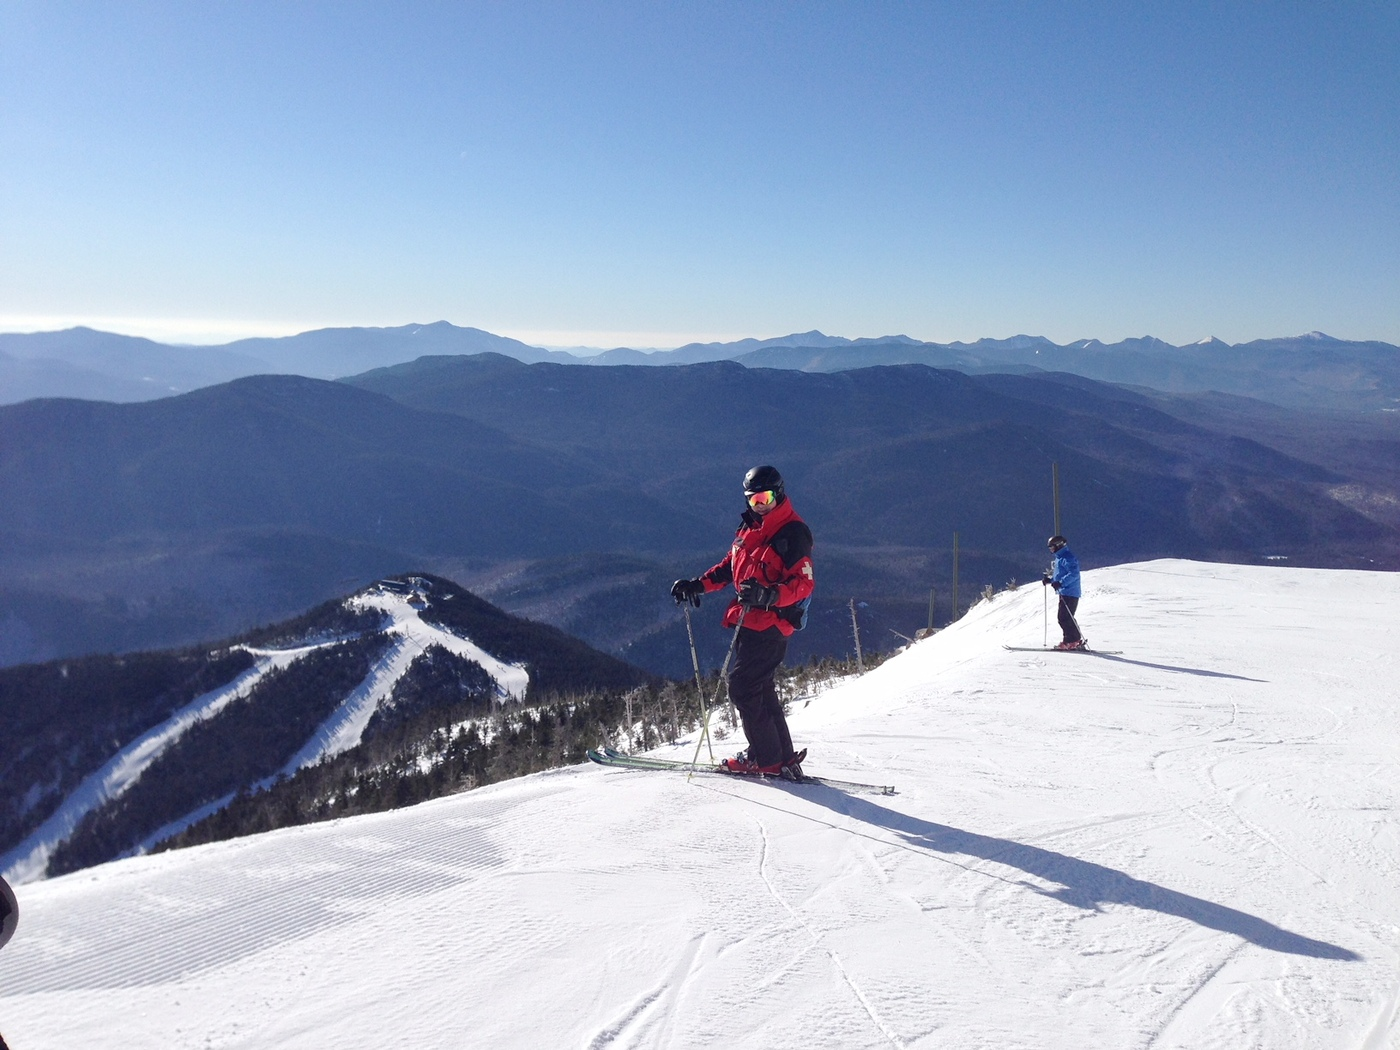 state-run ski areas in upstate new york are set to open in time for